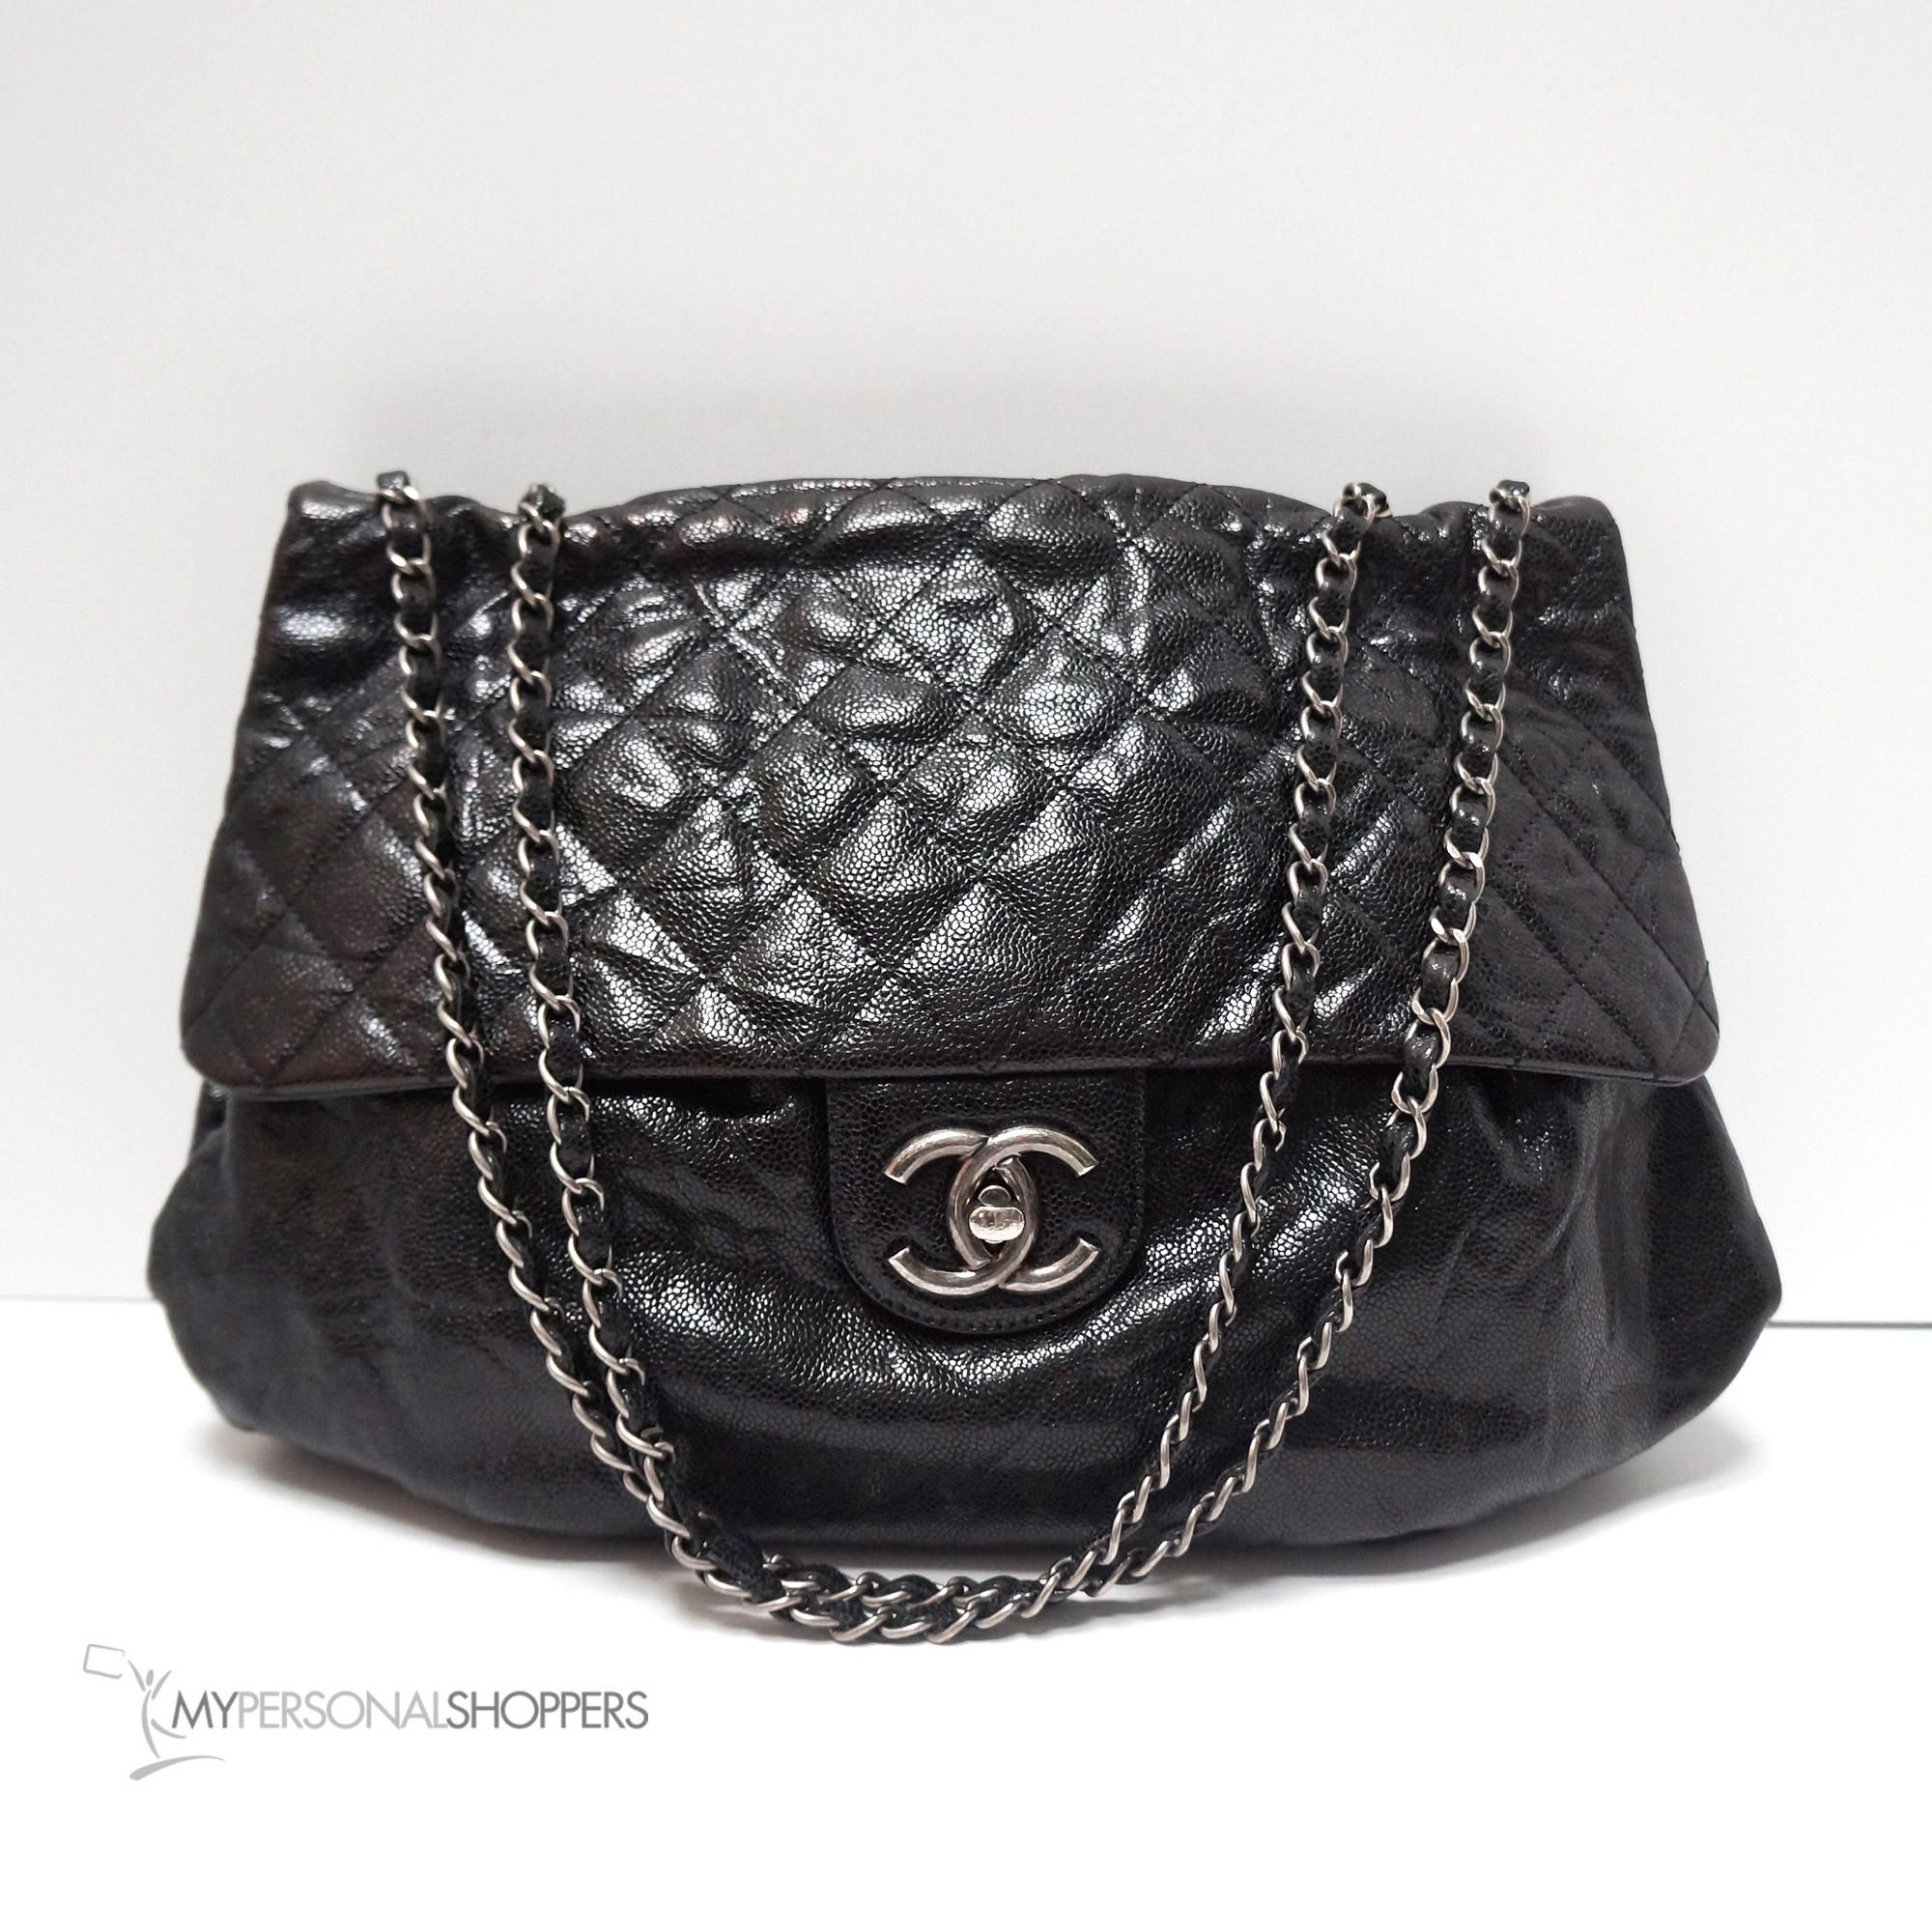 3296d9751120 Chanel Black Glazed Caviar Leather Elastic Jumbo Flap Messenger Cross-body  Bag